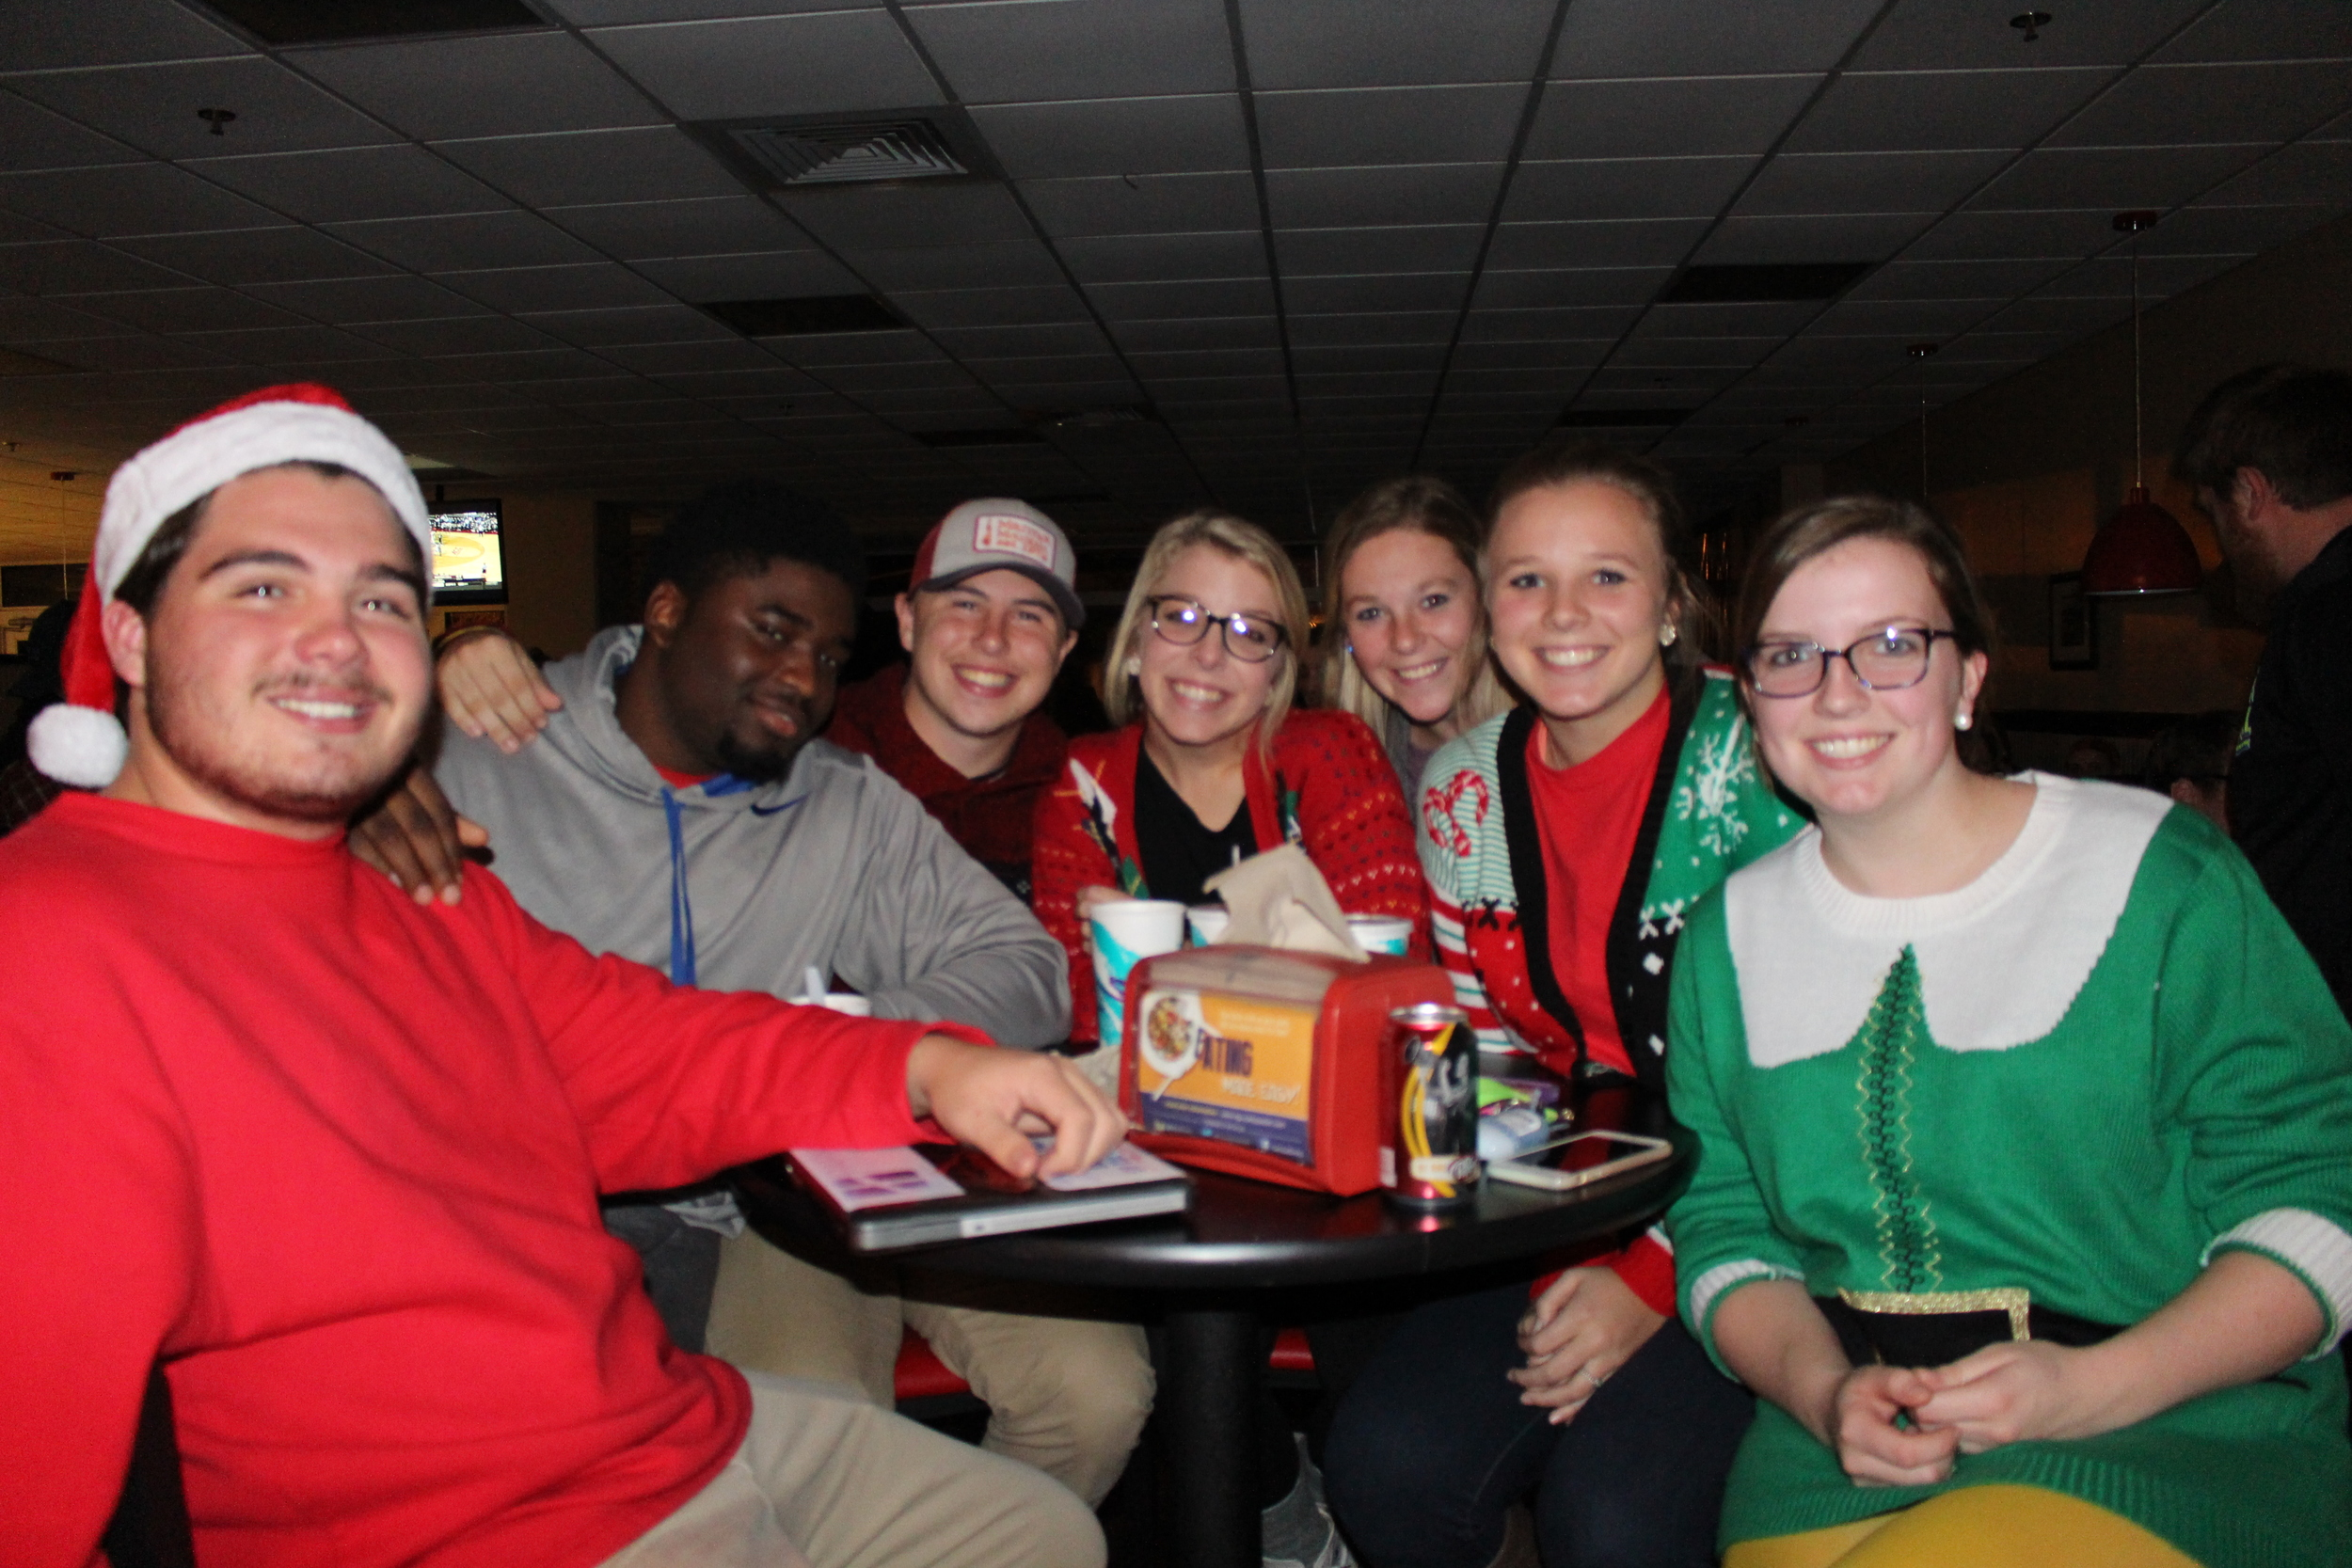 J.G. Faulk, Dominique Richardson, Cameron Ward, Macy McDonald, Chaffee Thompson and Faith Rodgers looking festive on Wednesday night.